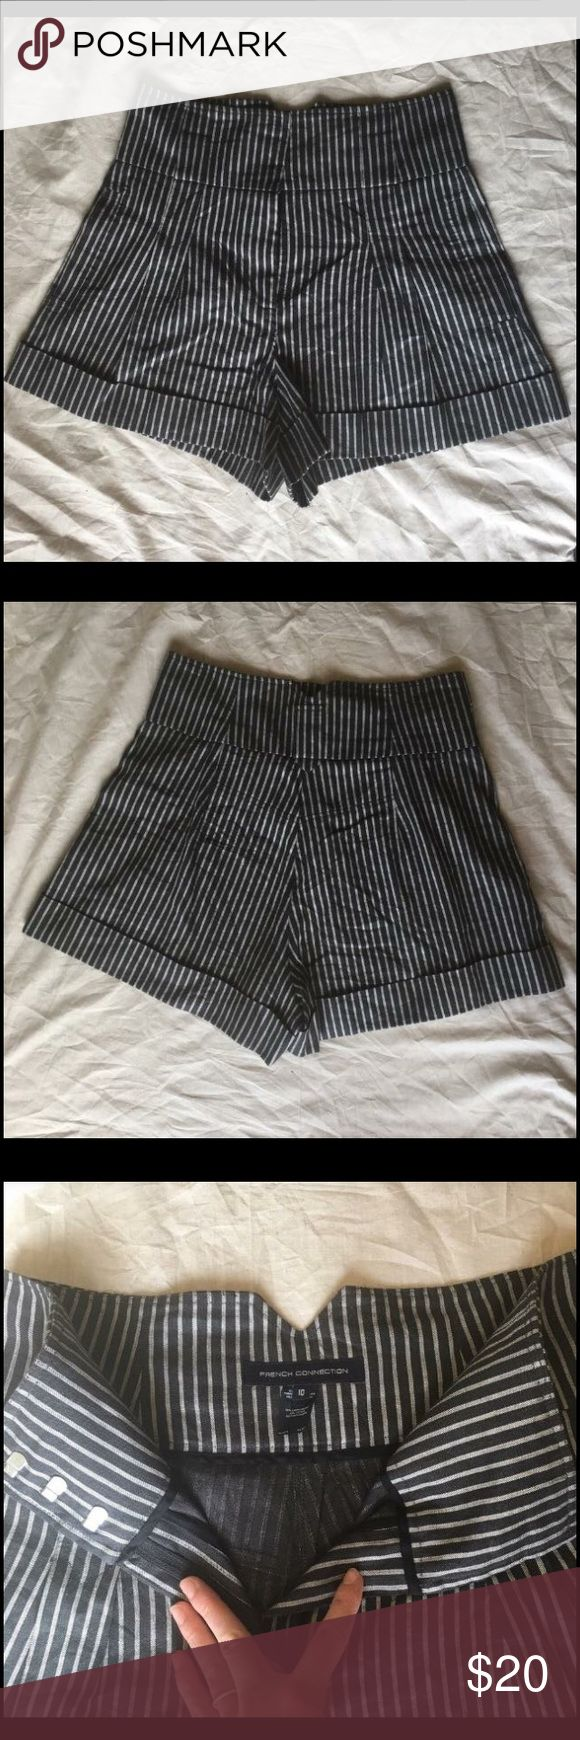 French Connection High Waisted shorts FCUK size 10 French Connection High Waisted shorts FCUK size 10. Black and white pinstripe, triple clasp and zipper front closure. Pleated and cuffed. Side hip pockets. French Connection Shorts